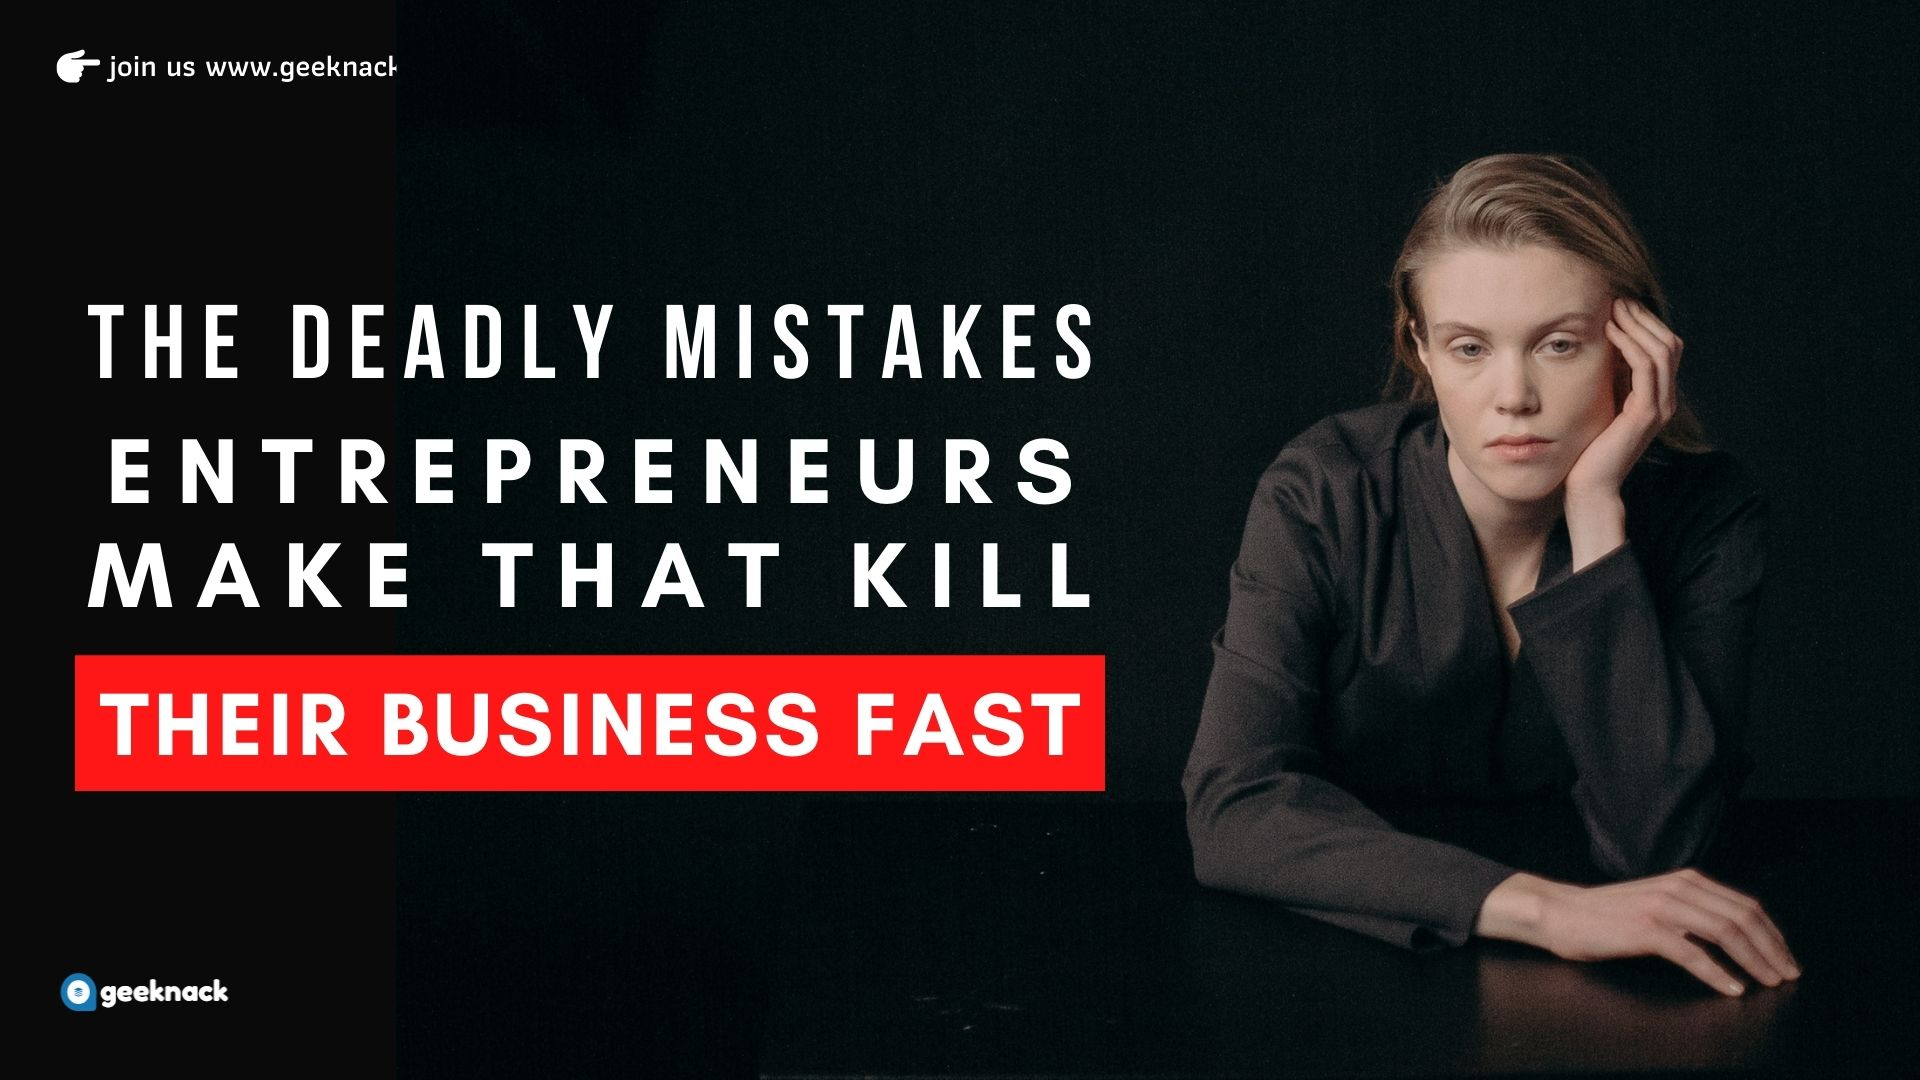 The Deadly Mistakes Entrepreneurs Make That Kill Their Business Fast